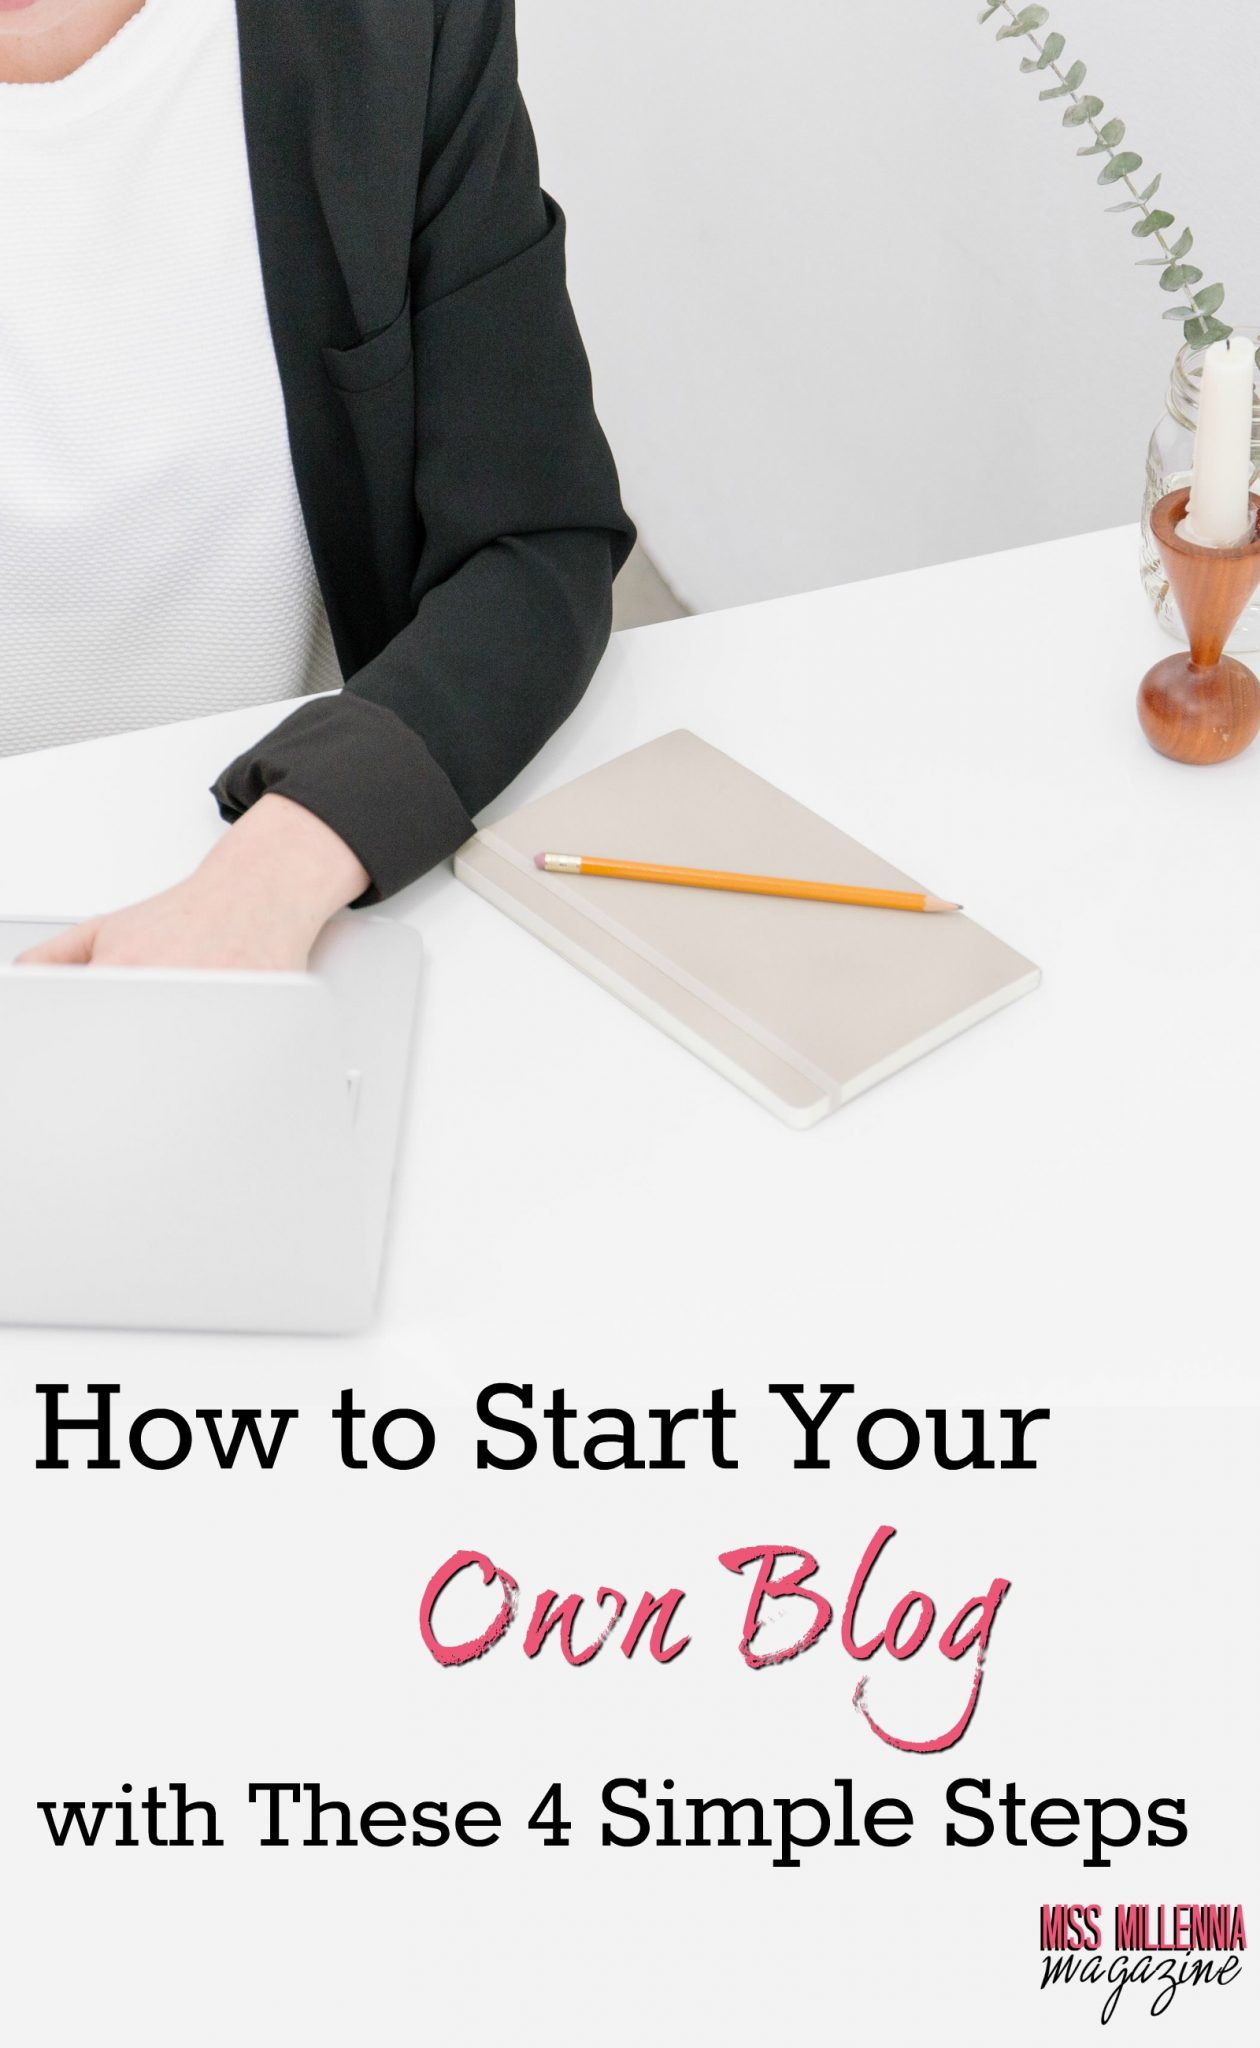 How to Start Your Own Blog with These 4 Simple Steps